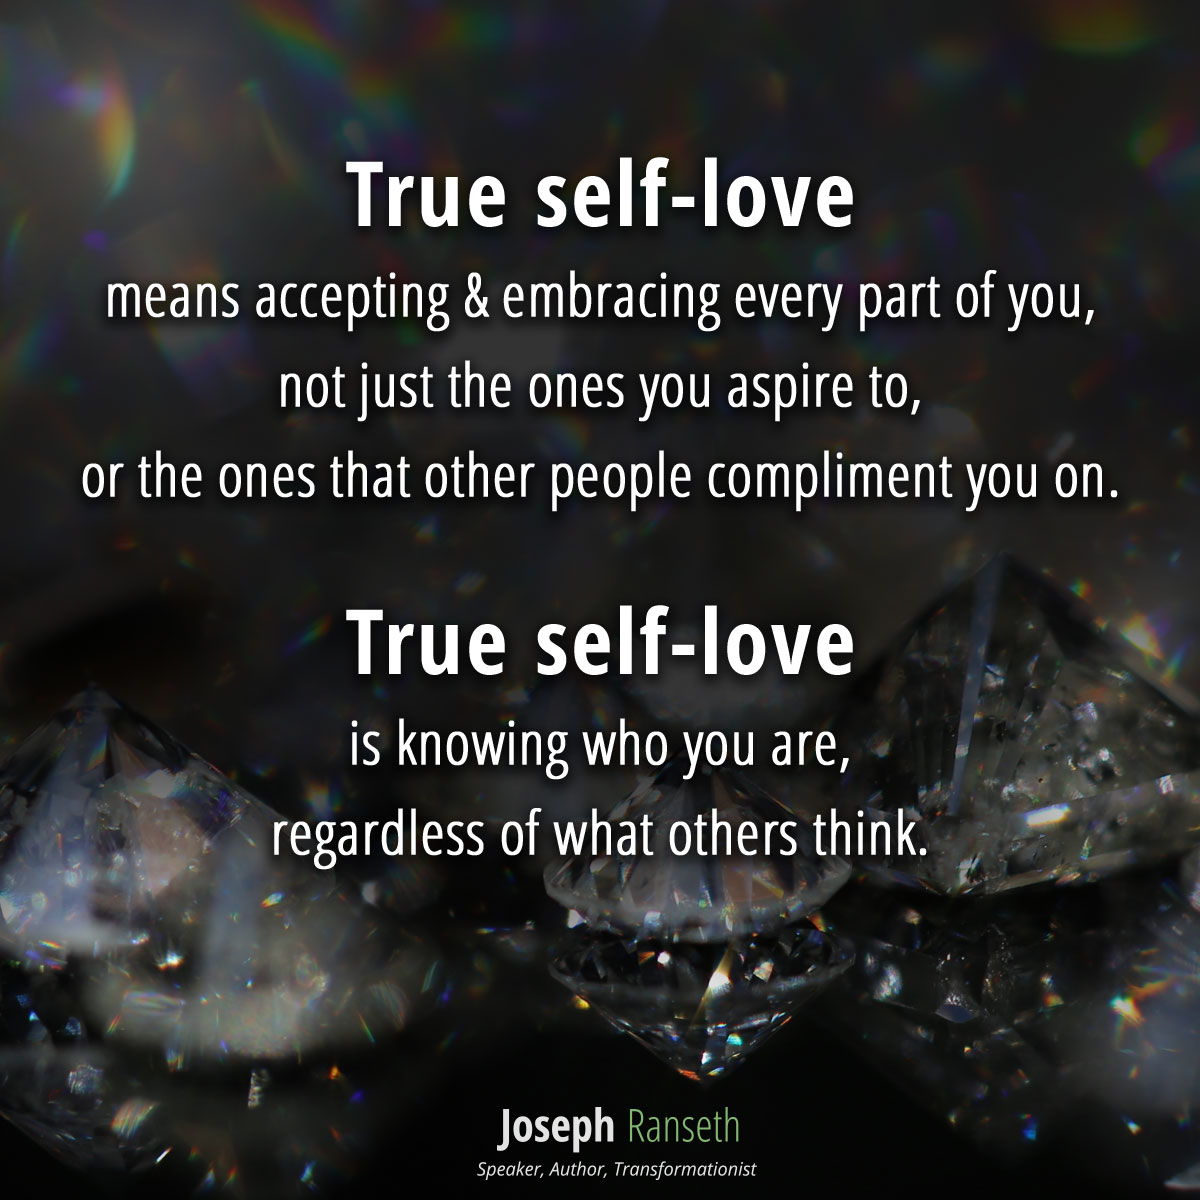 True self-love means accepting & embracing every part of you, not just the ones you aspire to, or the ones that other people compliment you on. True self-love is knowing who you are, regardless of what others think. It is embracing the shadows, as well as the sunshine.